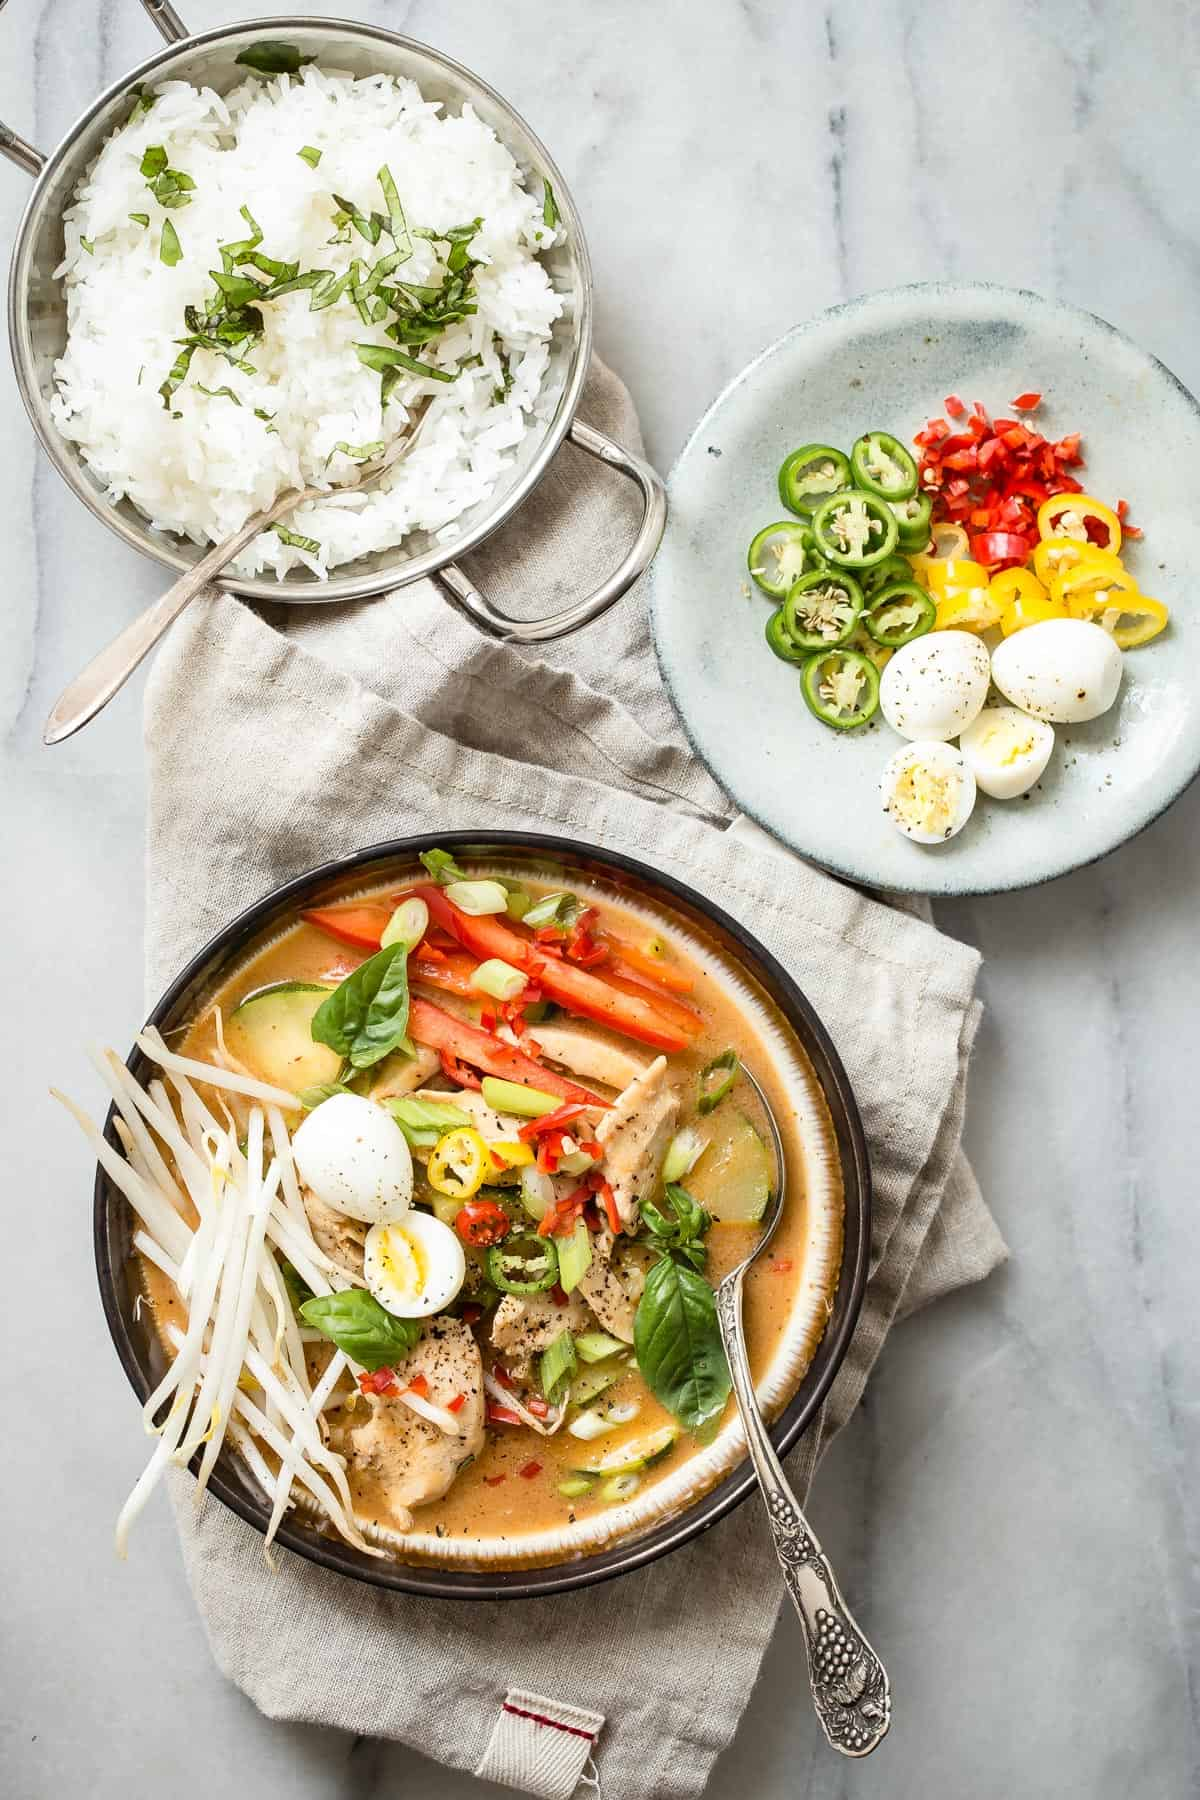 This Thai style Red Chicken Curry is just like the one I buy from my local Thai restaurant! Coconut milk with fish sauce and spices make it the perfect bath to cook some thin sliced chicken in. Add some sliced jalapeños if you like the heat!